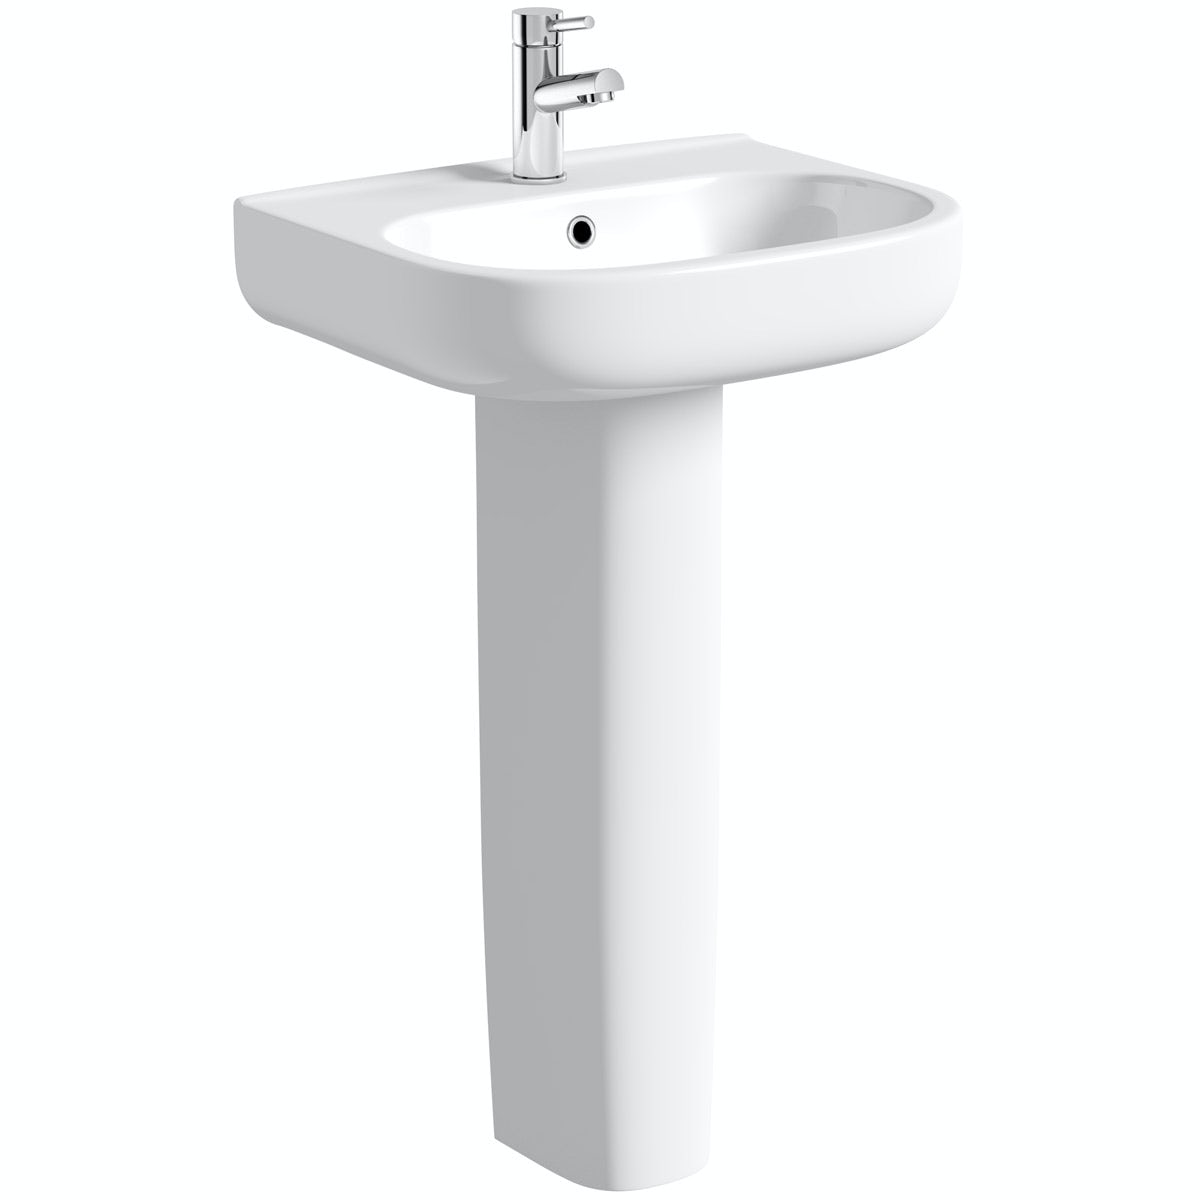 Orchard Lune full pedestal basin 550mm with waste